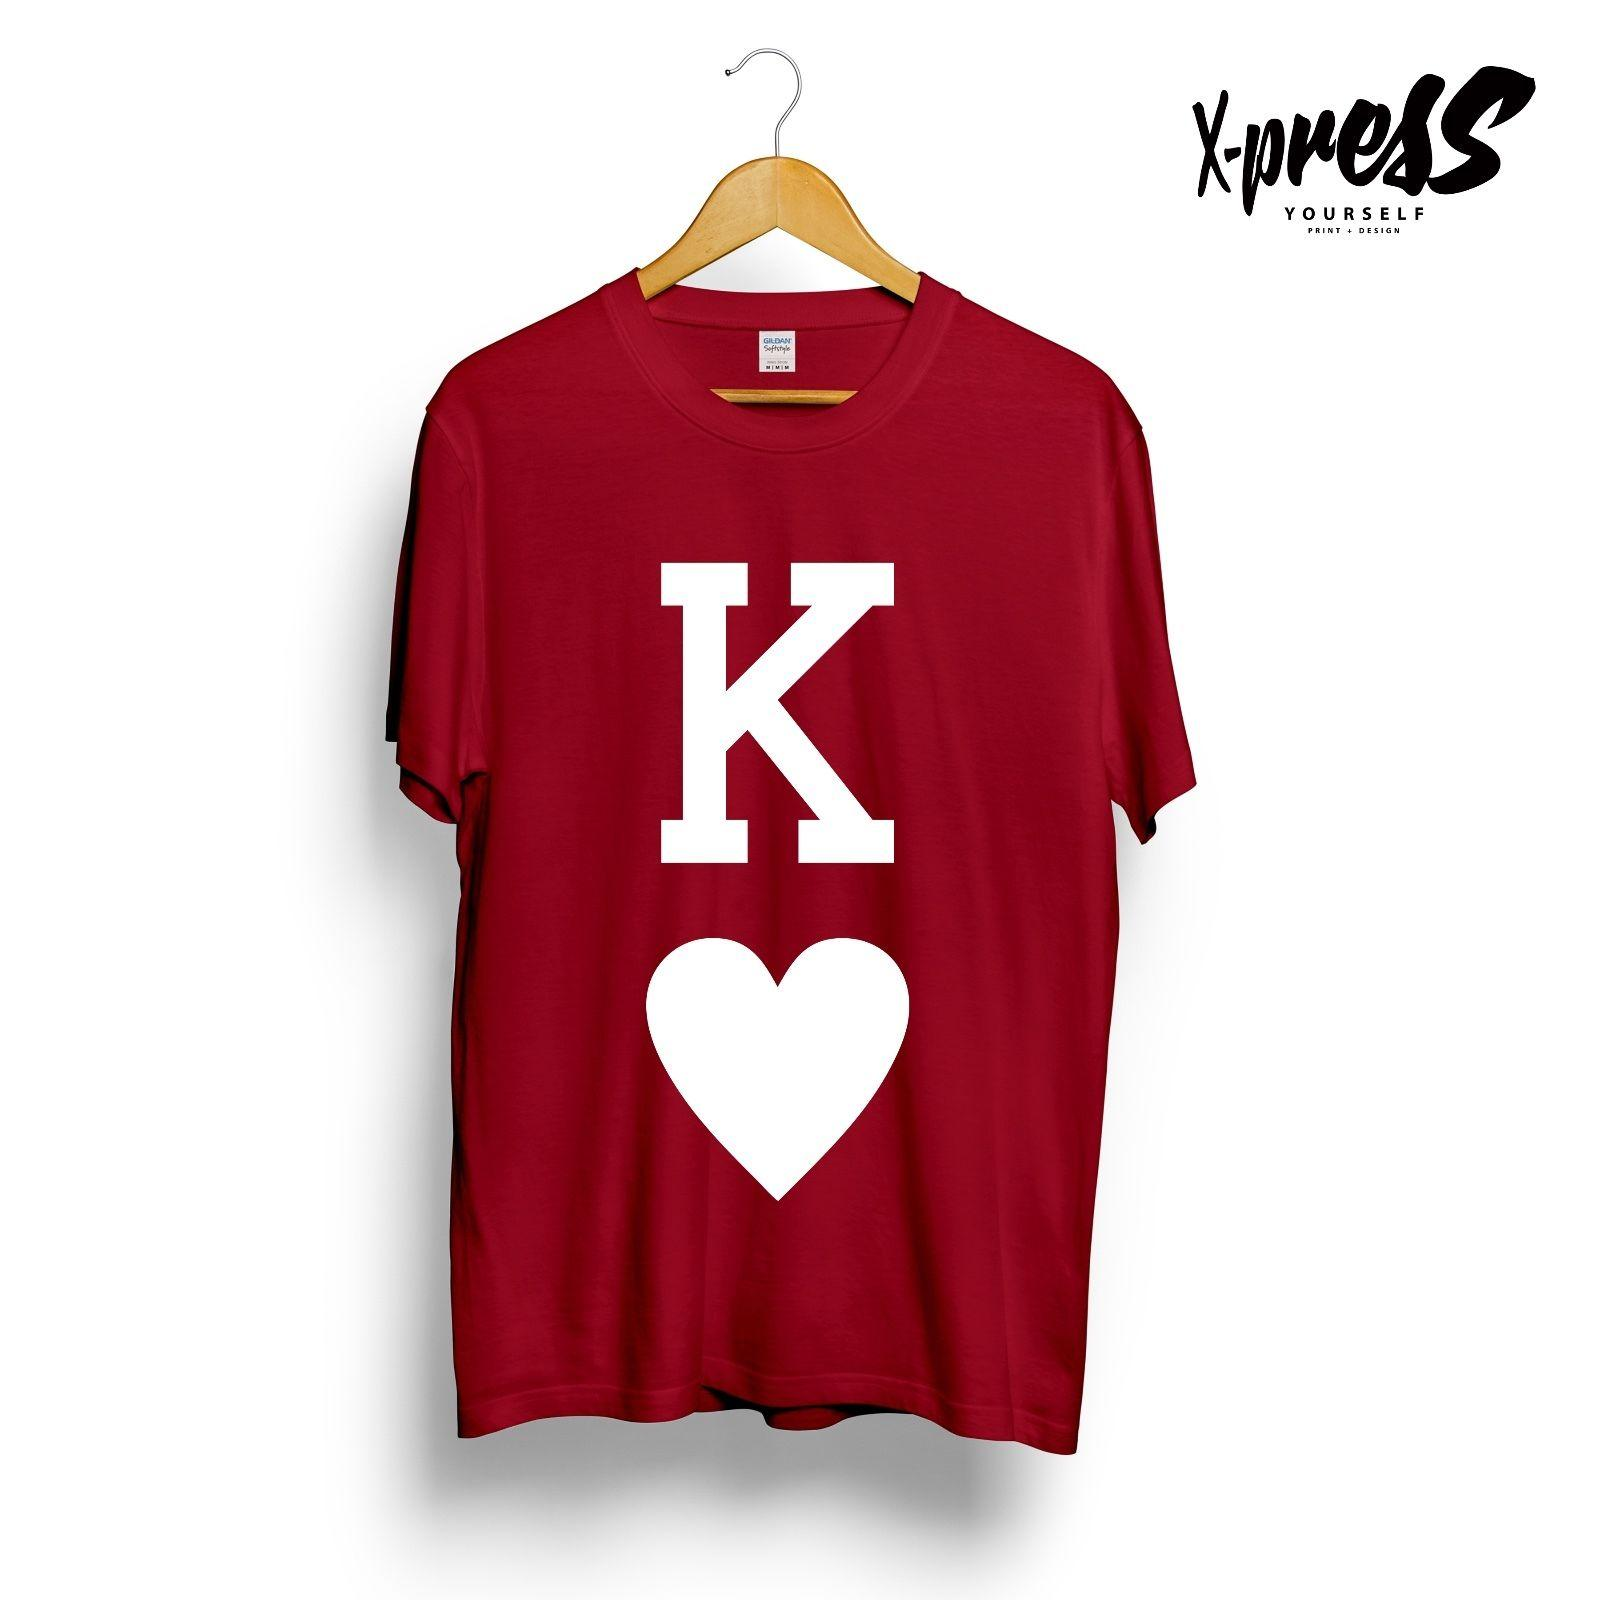 c673a4a0426f KING OF HEARTS PRINTED GRAPHIC MENS T SHIRT UNIQUE COOL ICON DESIGN UNISEX  GIRLS 2018 New Tee Print, Men T Shirt Tops,Hip Hop Short T Shirt Quirky T  Shirt ...